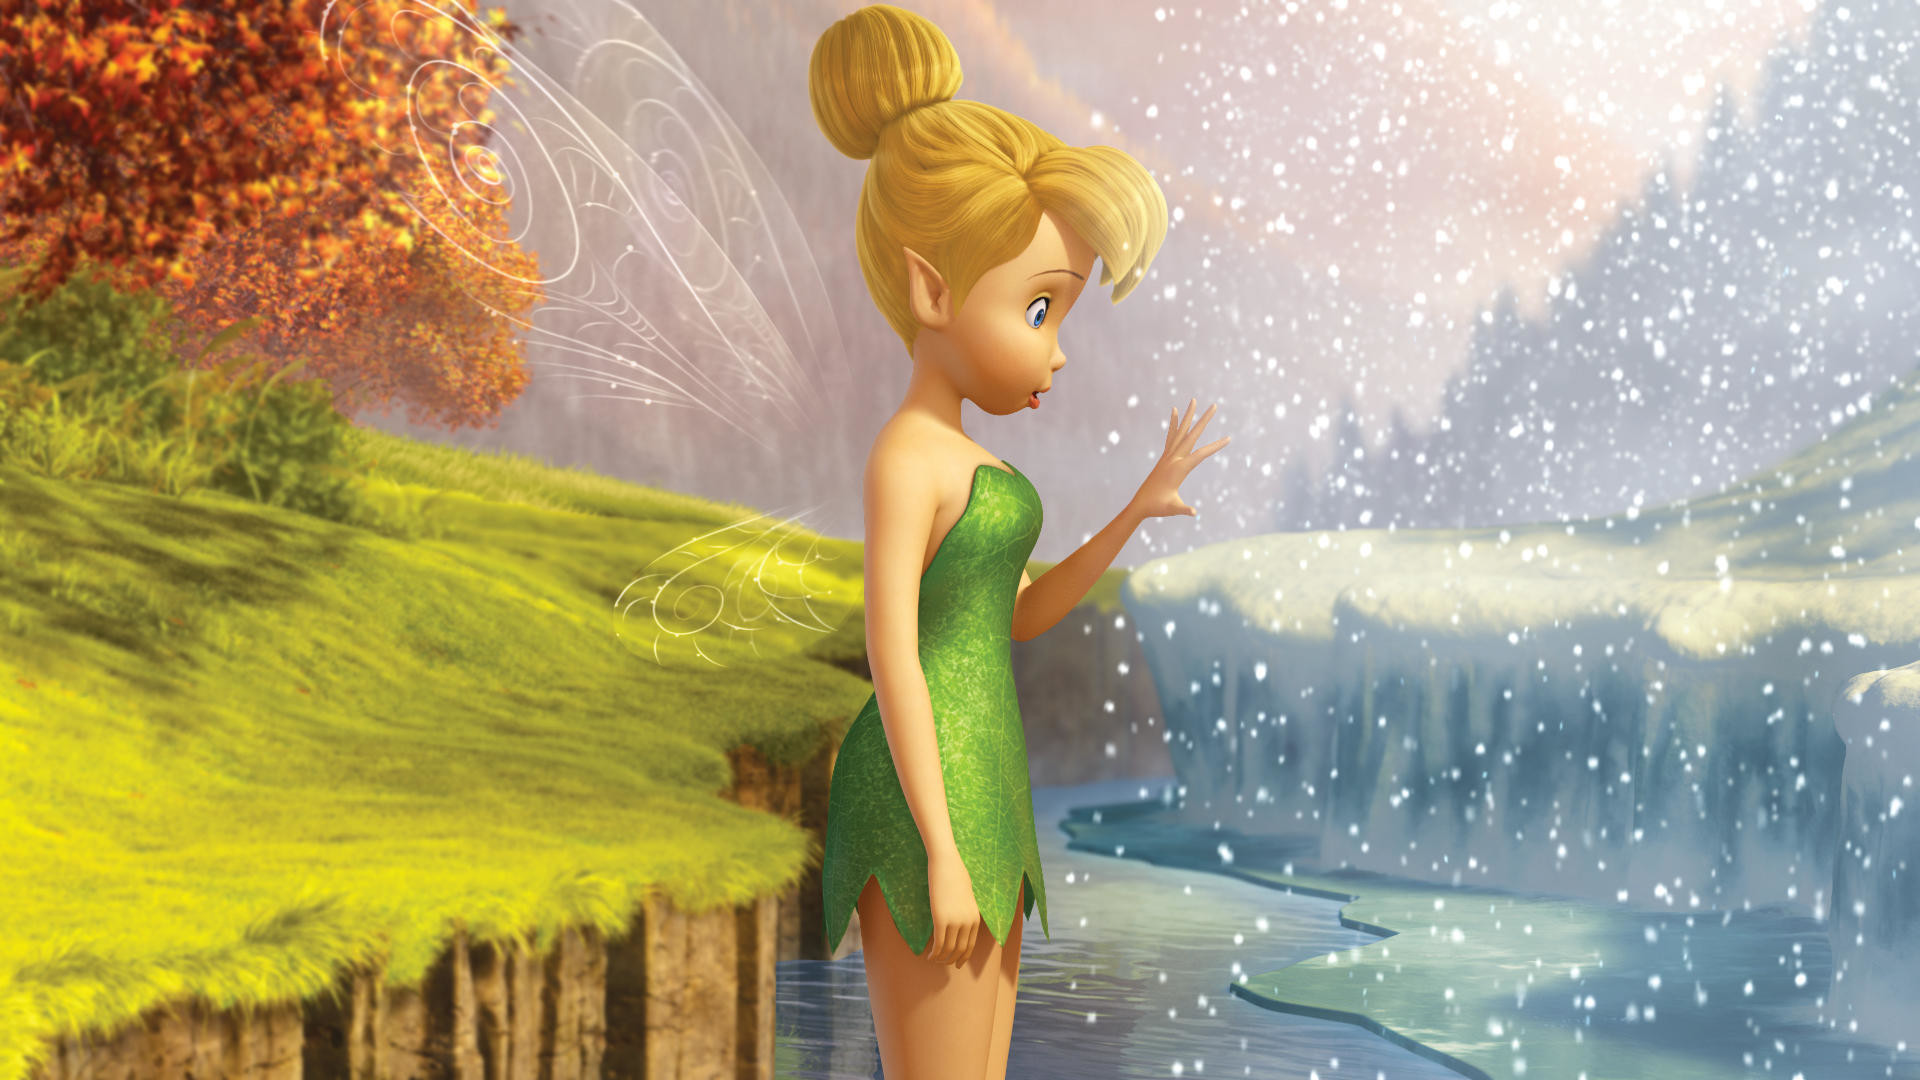 1920x1080 wallpaper.wiki-Free-HD-Tinkerbell-Backgrounds-PIC-WPE0010402. ""